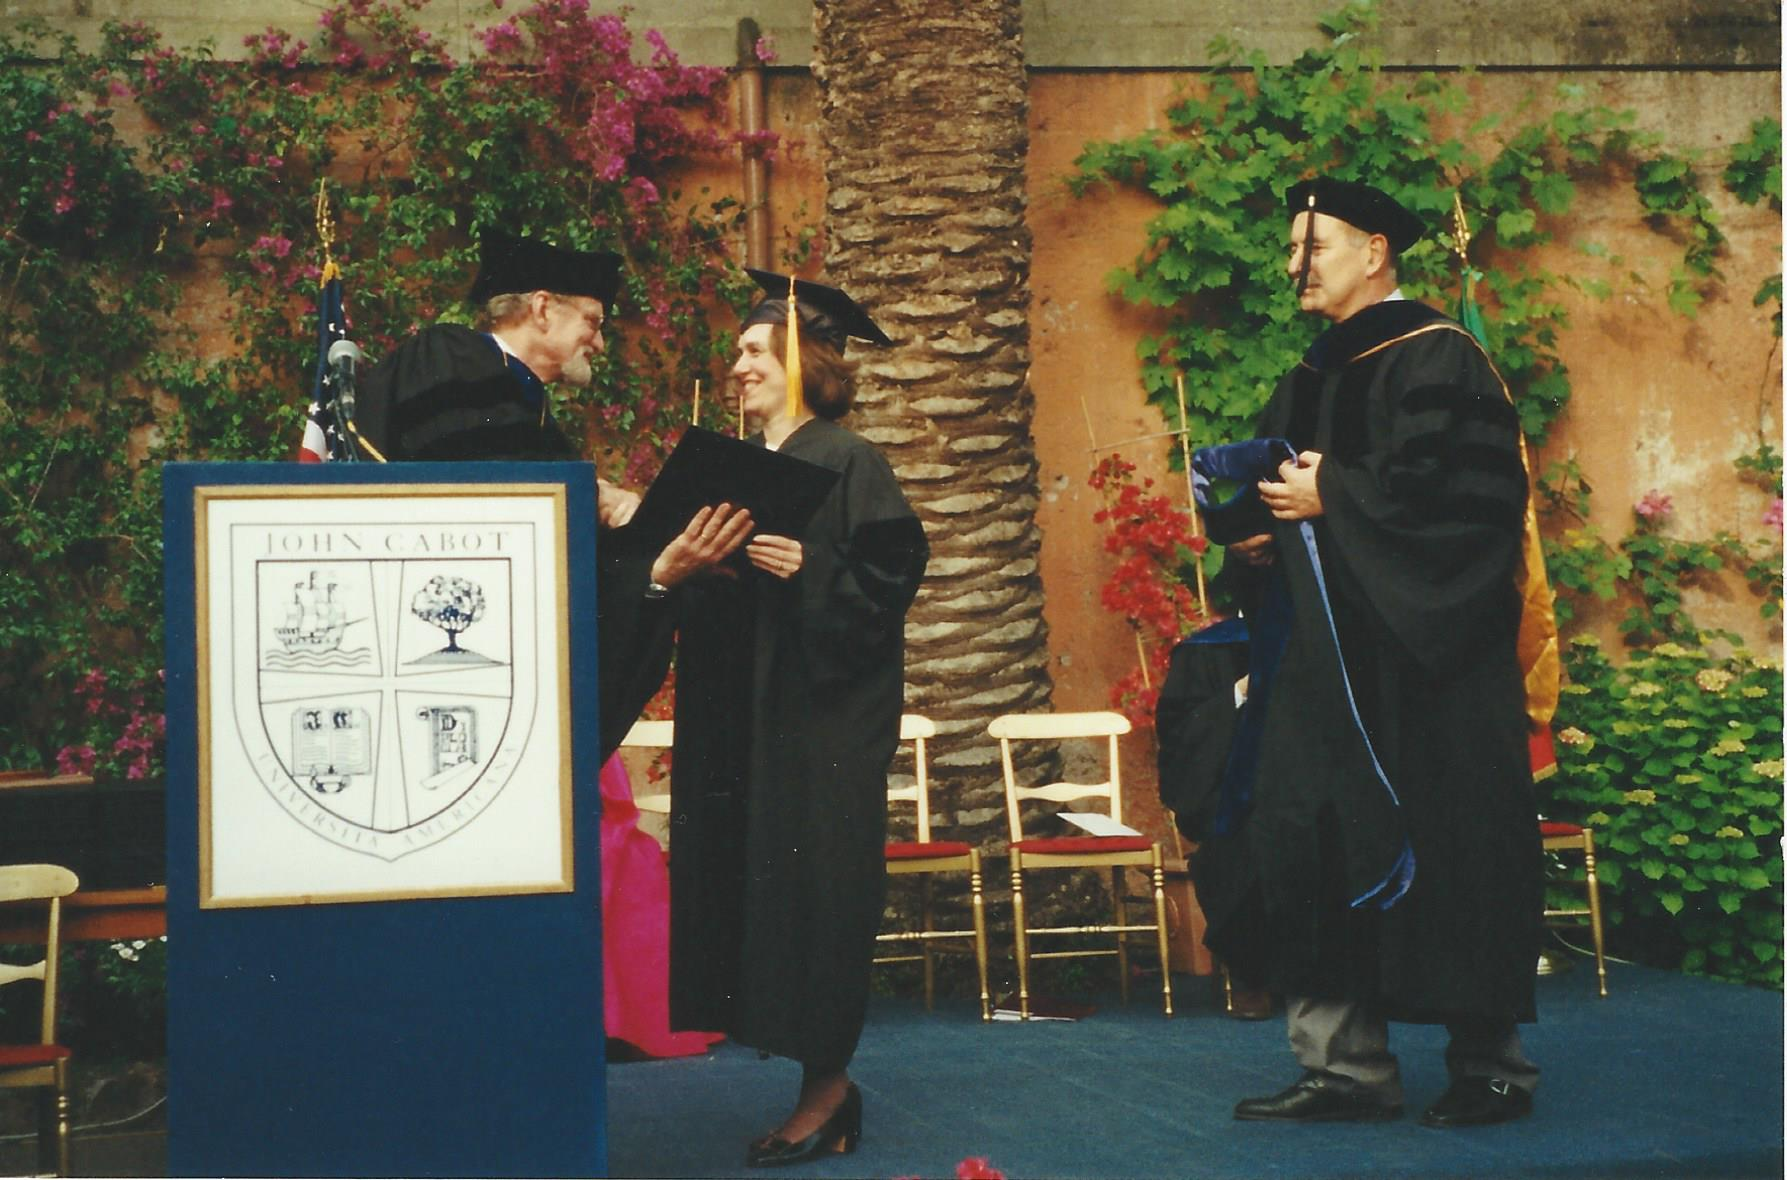 John Cabot University Honorary Degree in Rome, Italy (2001)